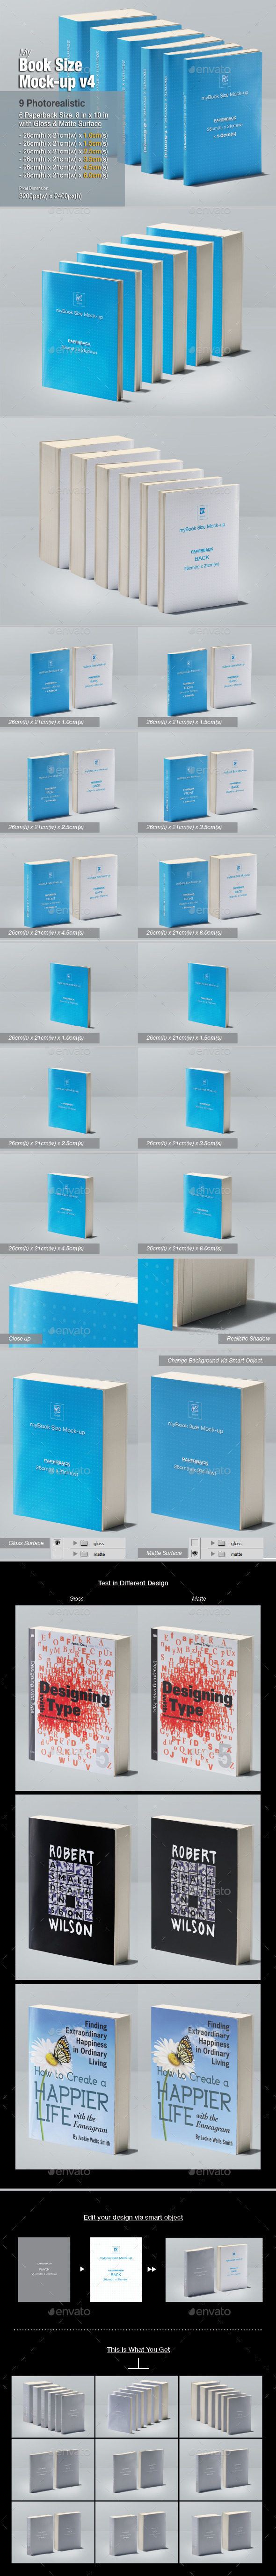 Graphicriver - myBook Size Mock-up v4 11340296